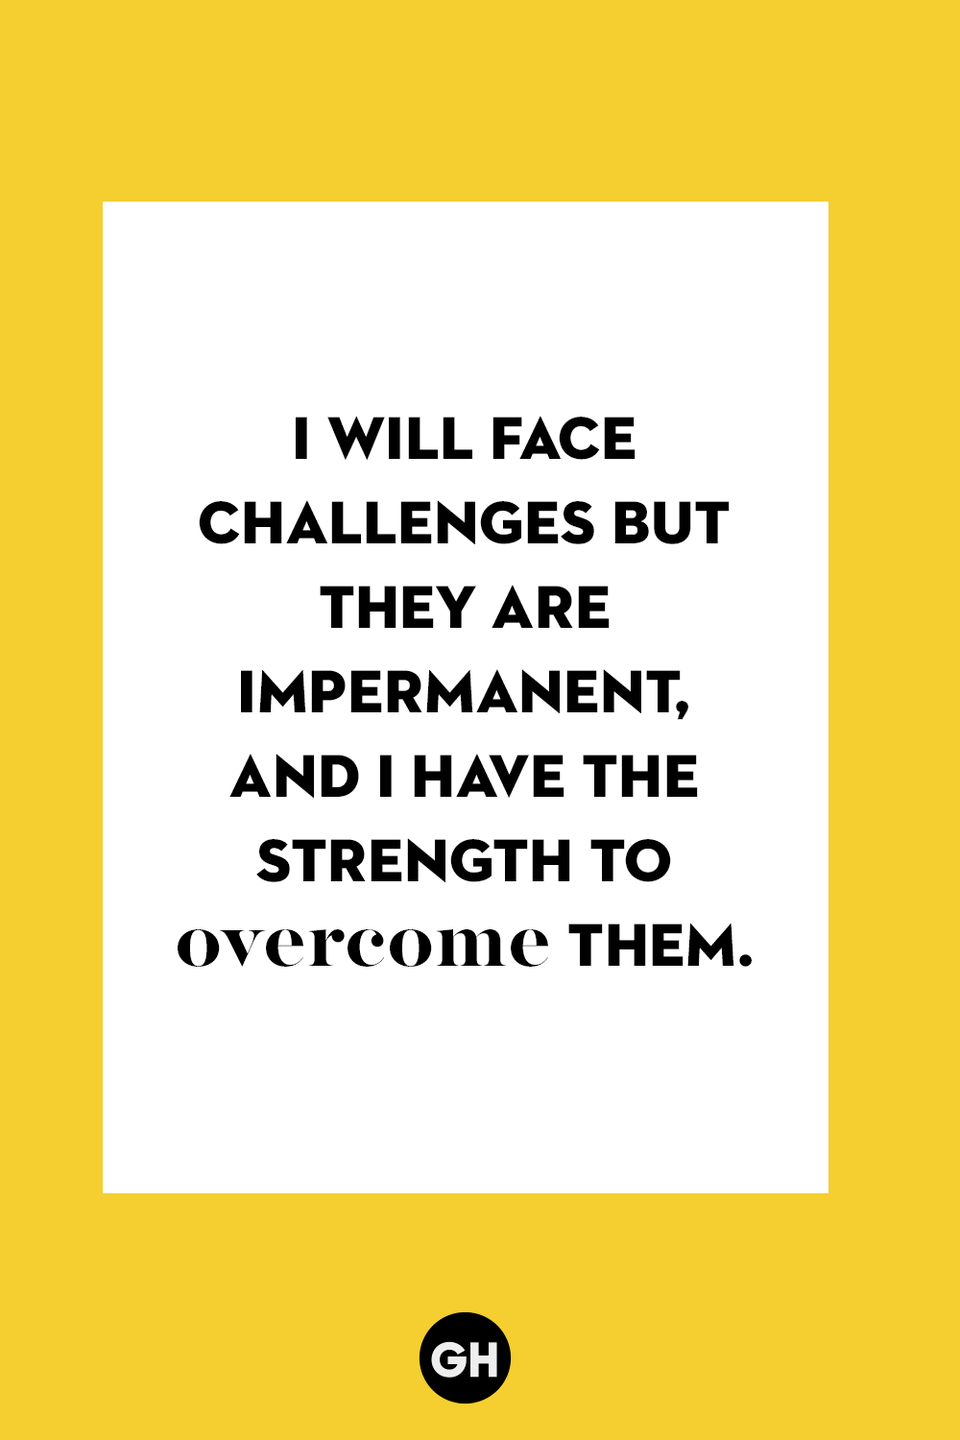 <p>I will face challenges but they are impermanent, and I have the strength to overcome them. </p>